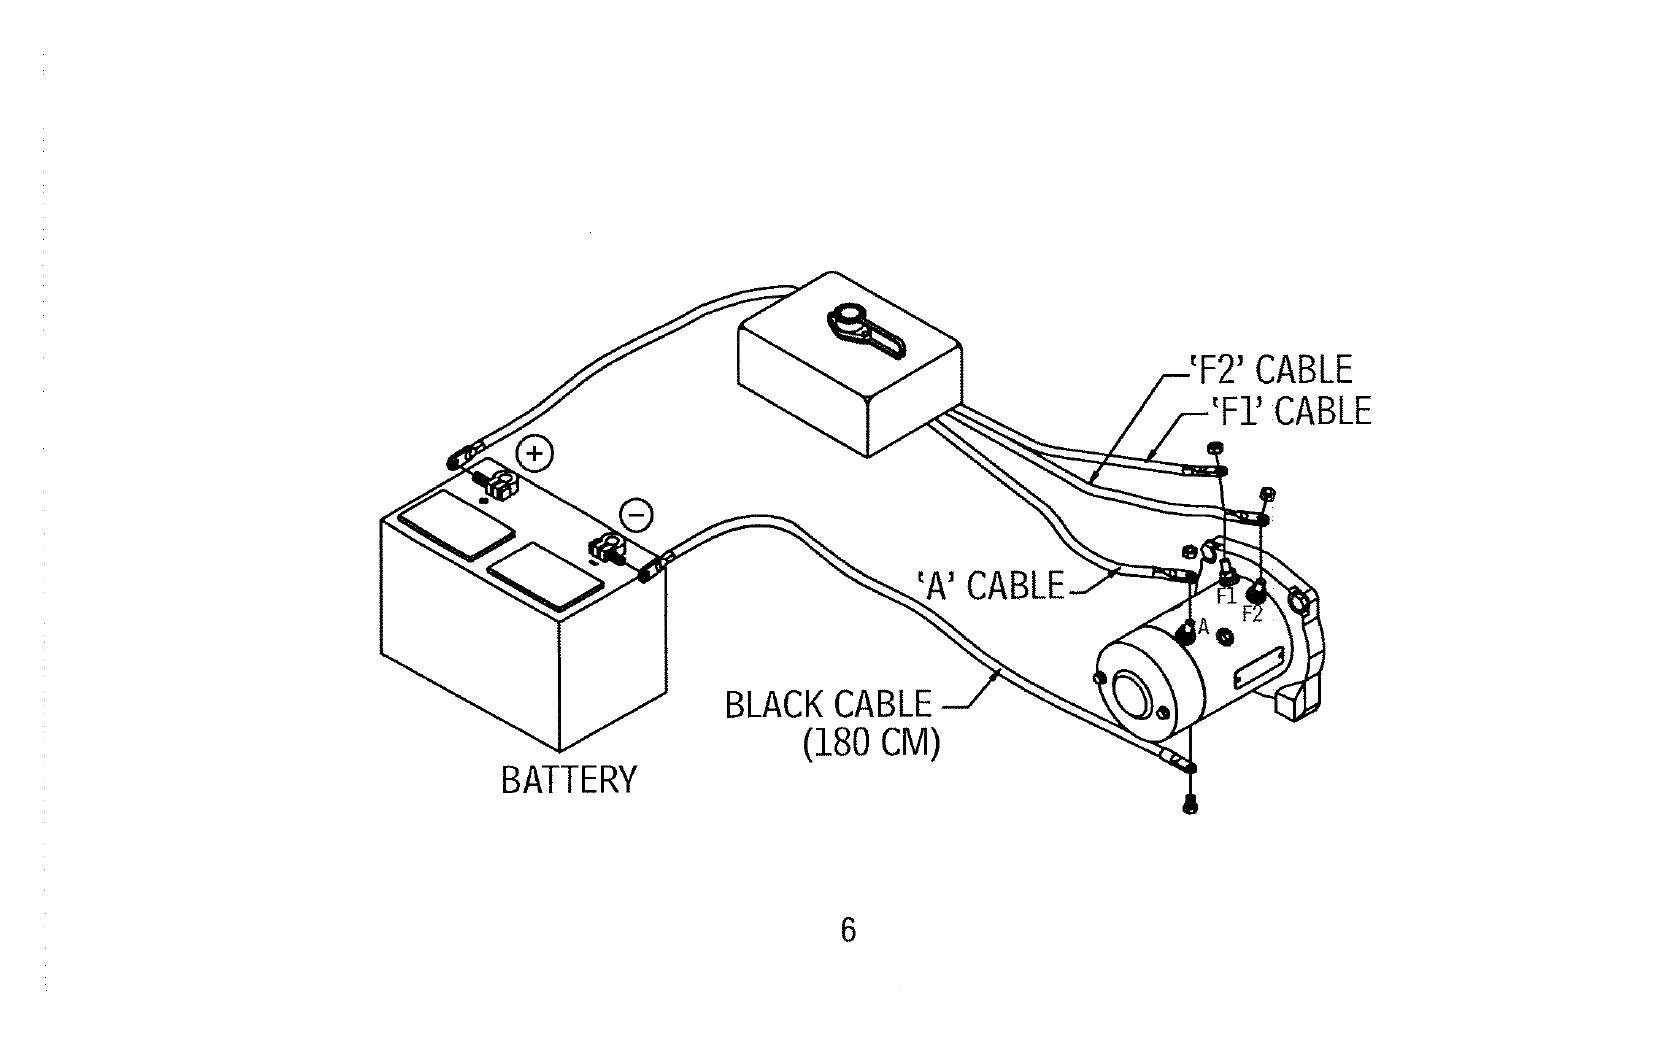 Atv Winch Solenoid Wiring Diagram from mainetreasurechest.com